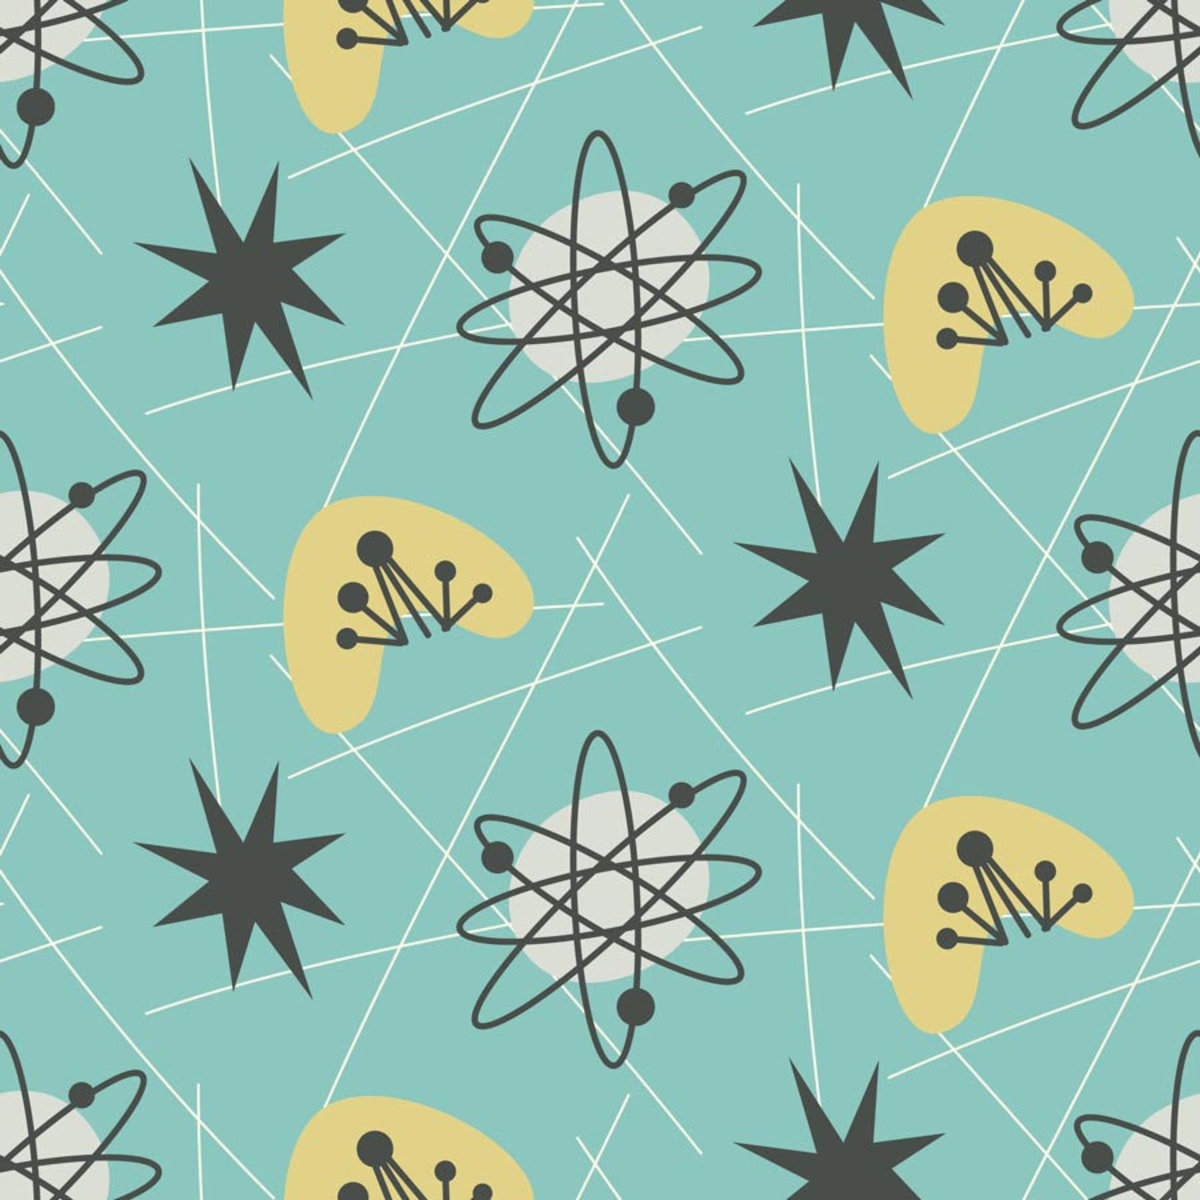 Atop a pale blue background, atomic and starlike motifs are scattered about Sample